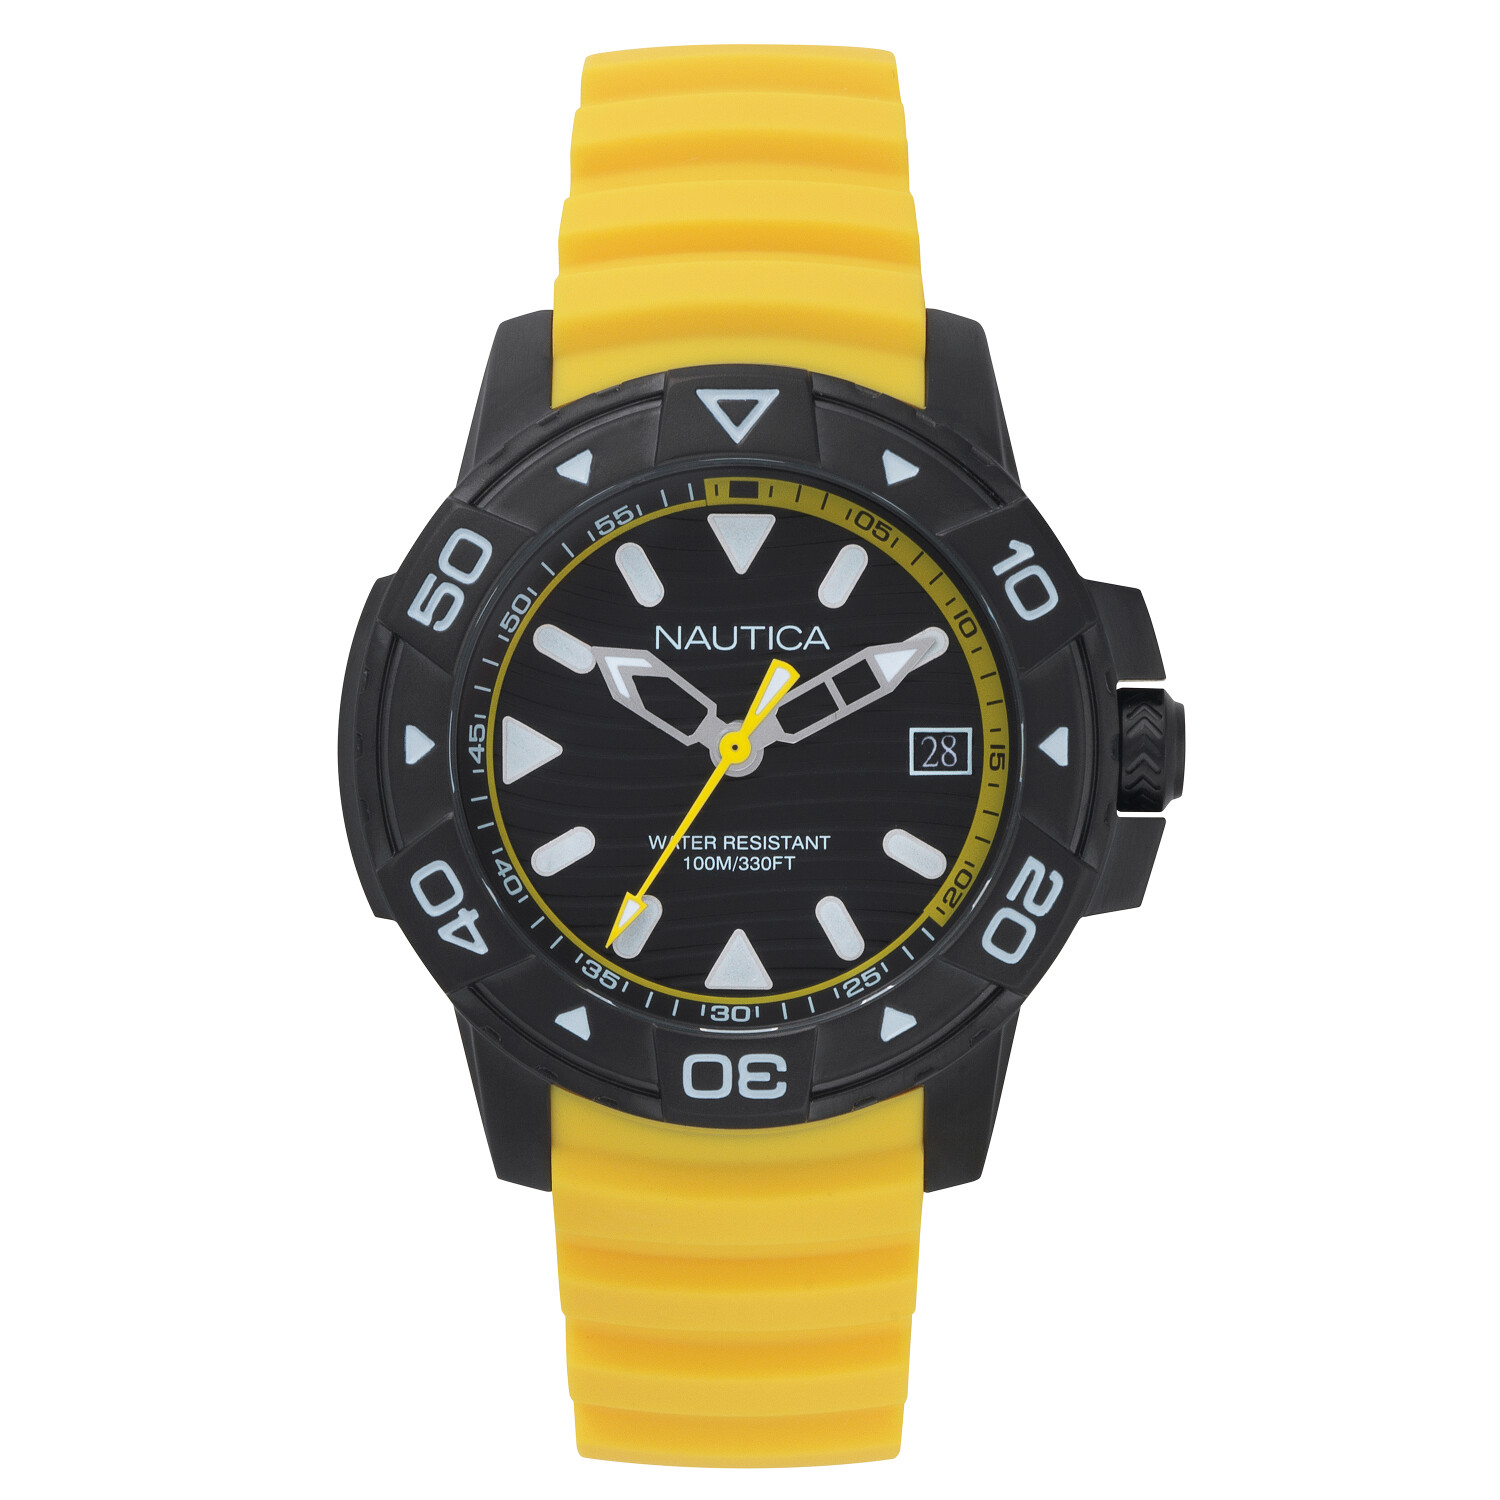 Nautica Watch NAPEGT004 Edgewater, Analog, Water Resistant, Silicone Band, Adjustable Buckle, 3 Hand Automatic Movement, Yellow